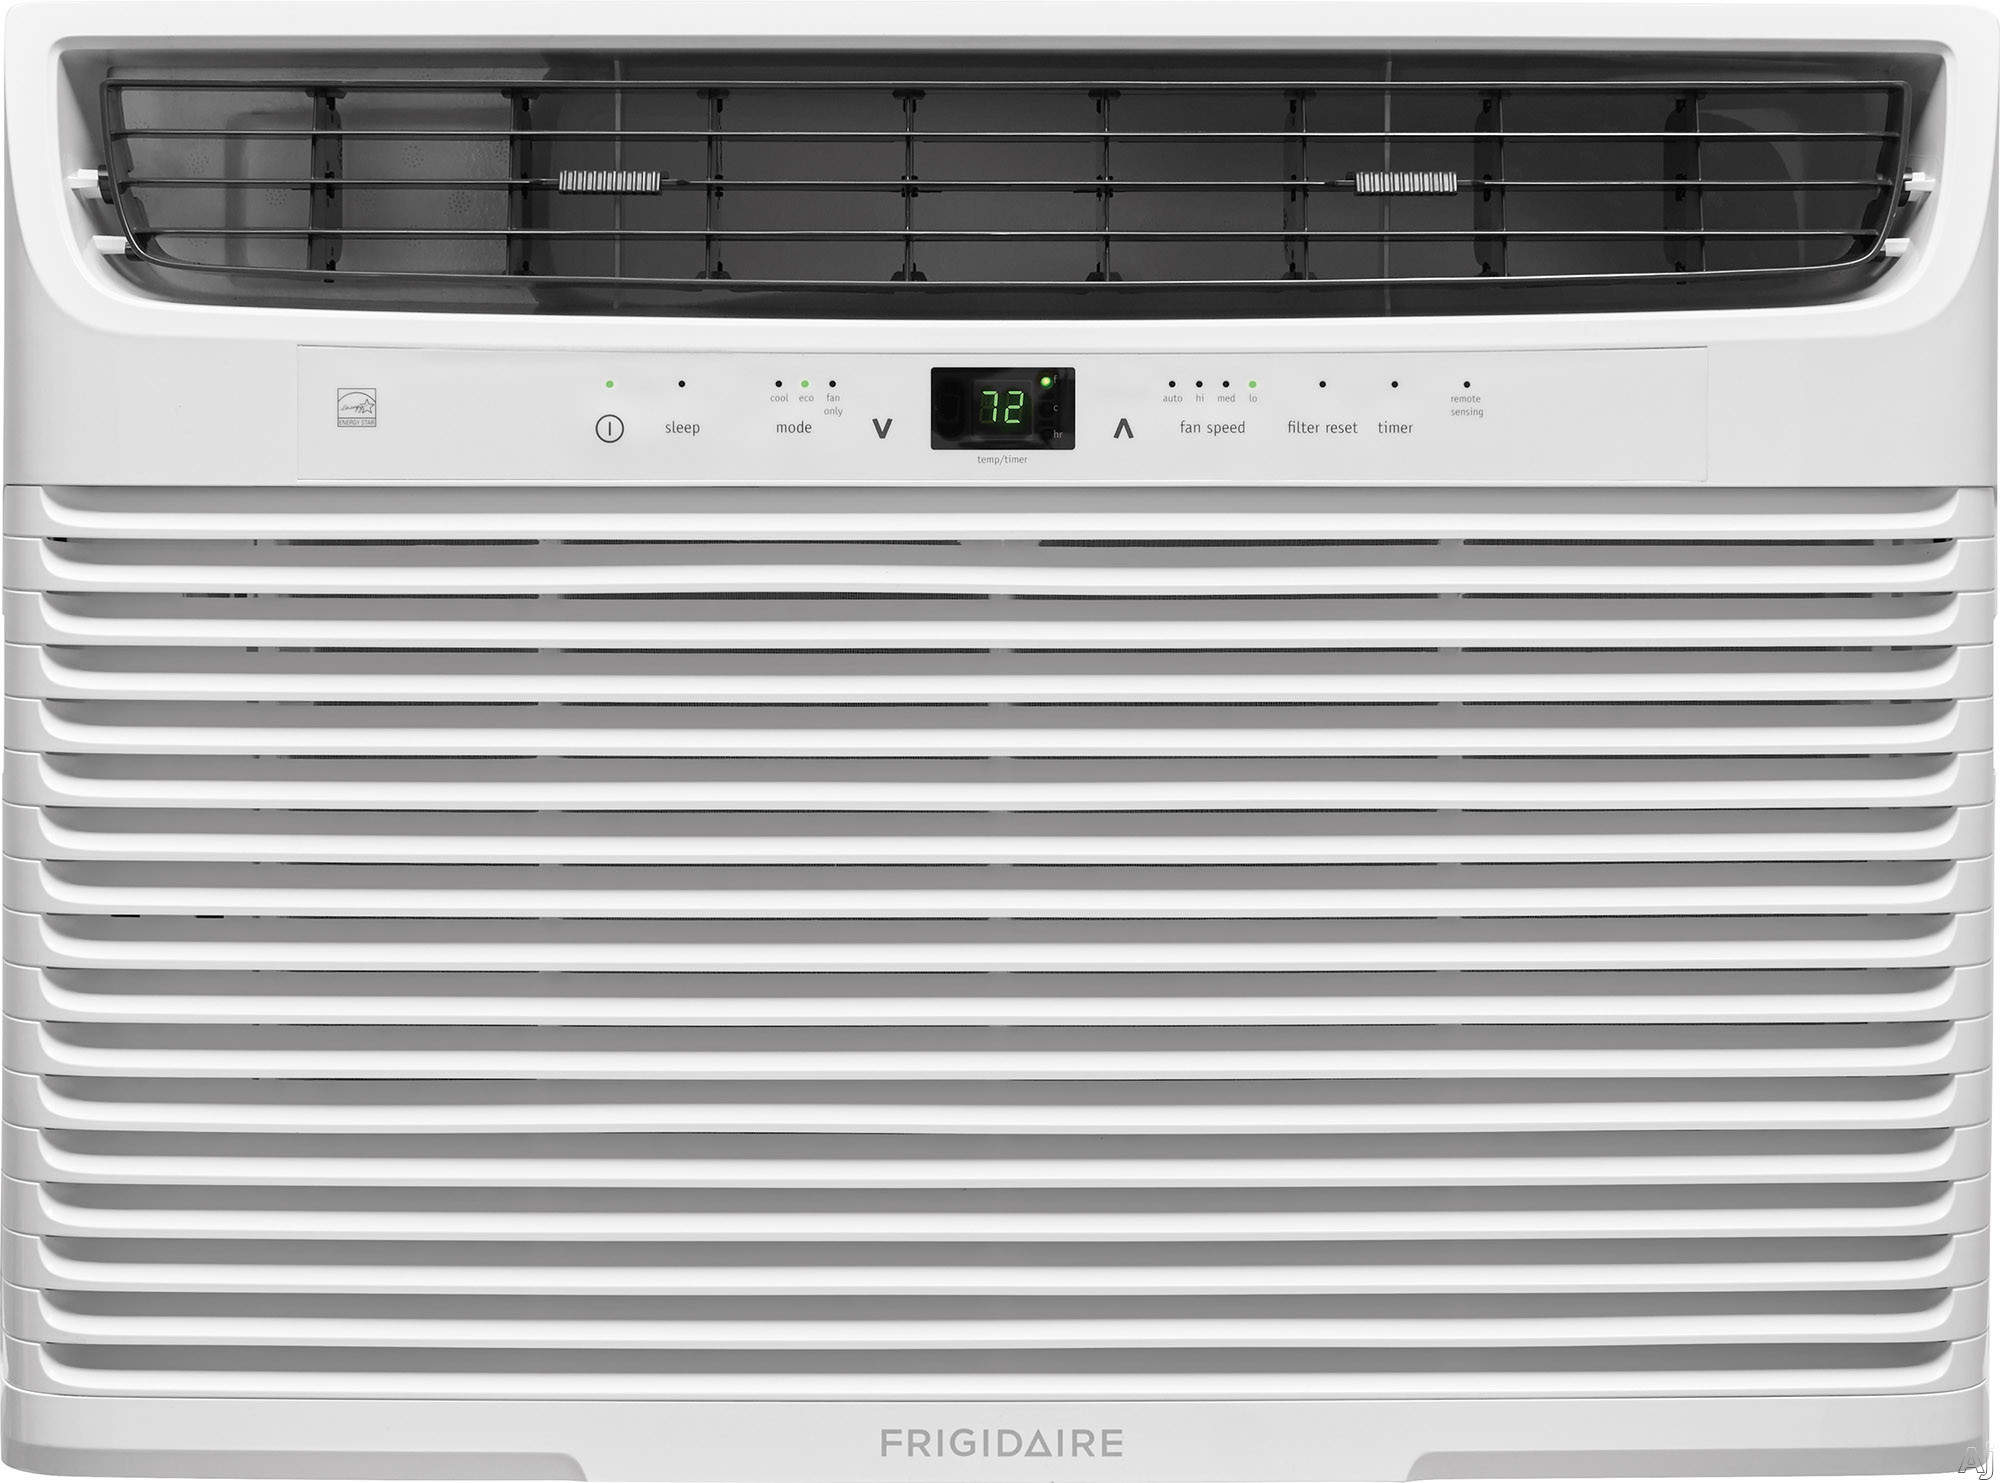 Frigidaire FFRE1233U1 12,000 BTU Room Air Conditioner with Effortless™ Remote Temperature Control, Programmable 24-Hour Timer, Effortless™ Clean Filter, SpaceWise® Adjustable Side Panel